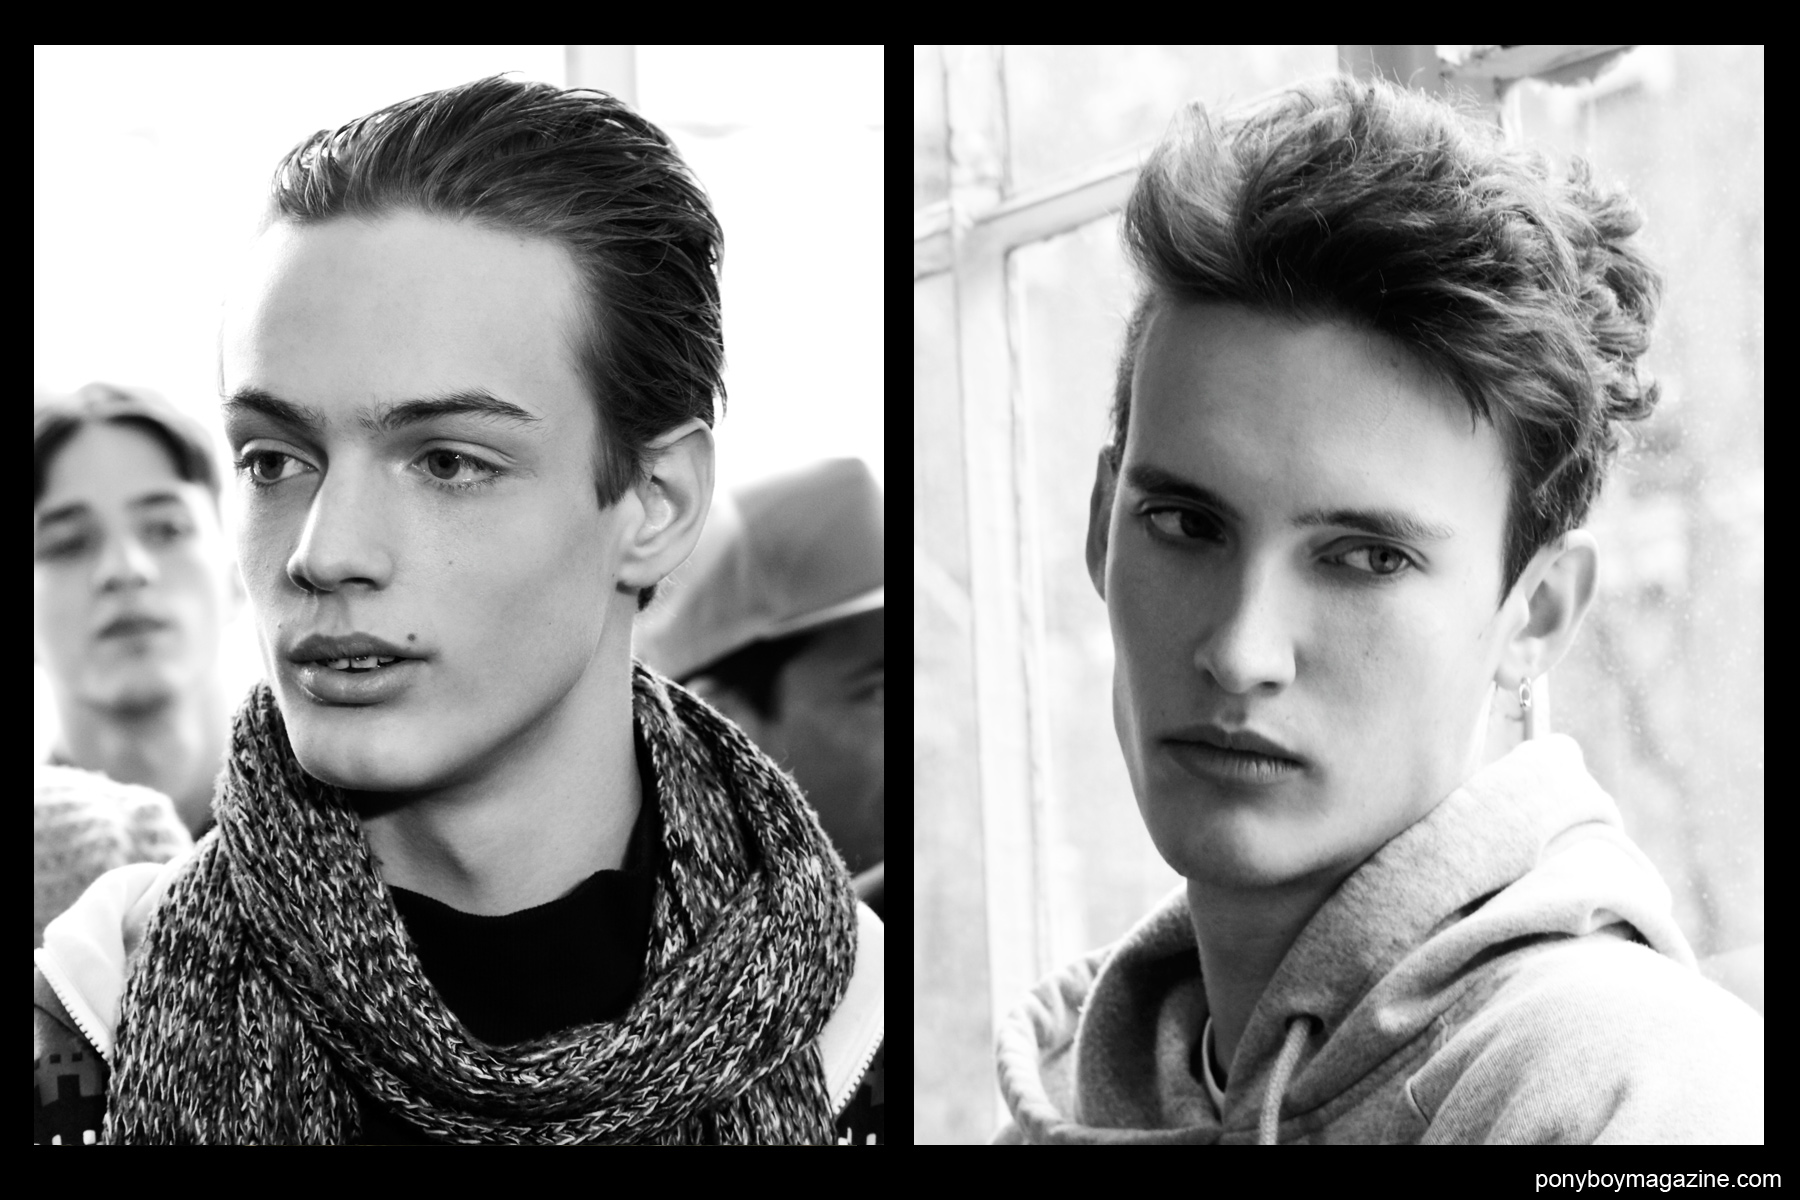 B&W photos of male models Charlie James and Dzhovani Gospodinov, backstage at the Duckie Brown F/W15 menwear show. Photographed by Alexander Thompson for Ponyboy magazine.